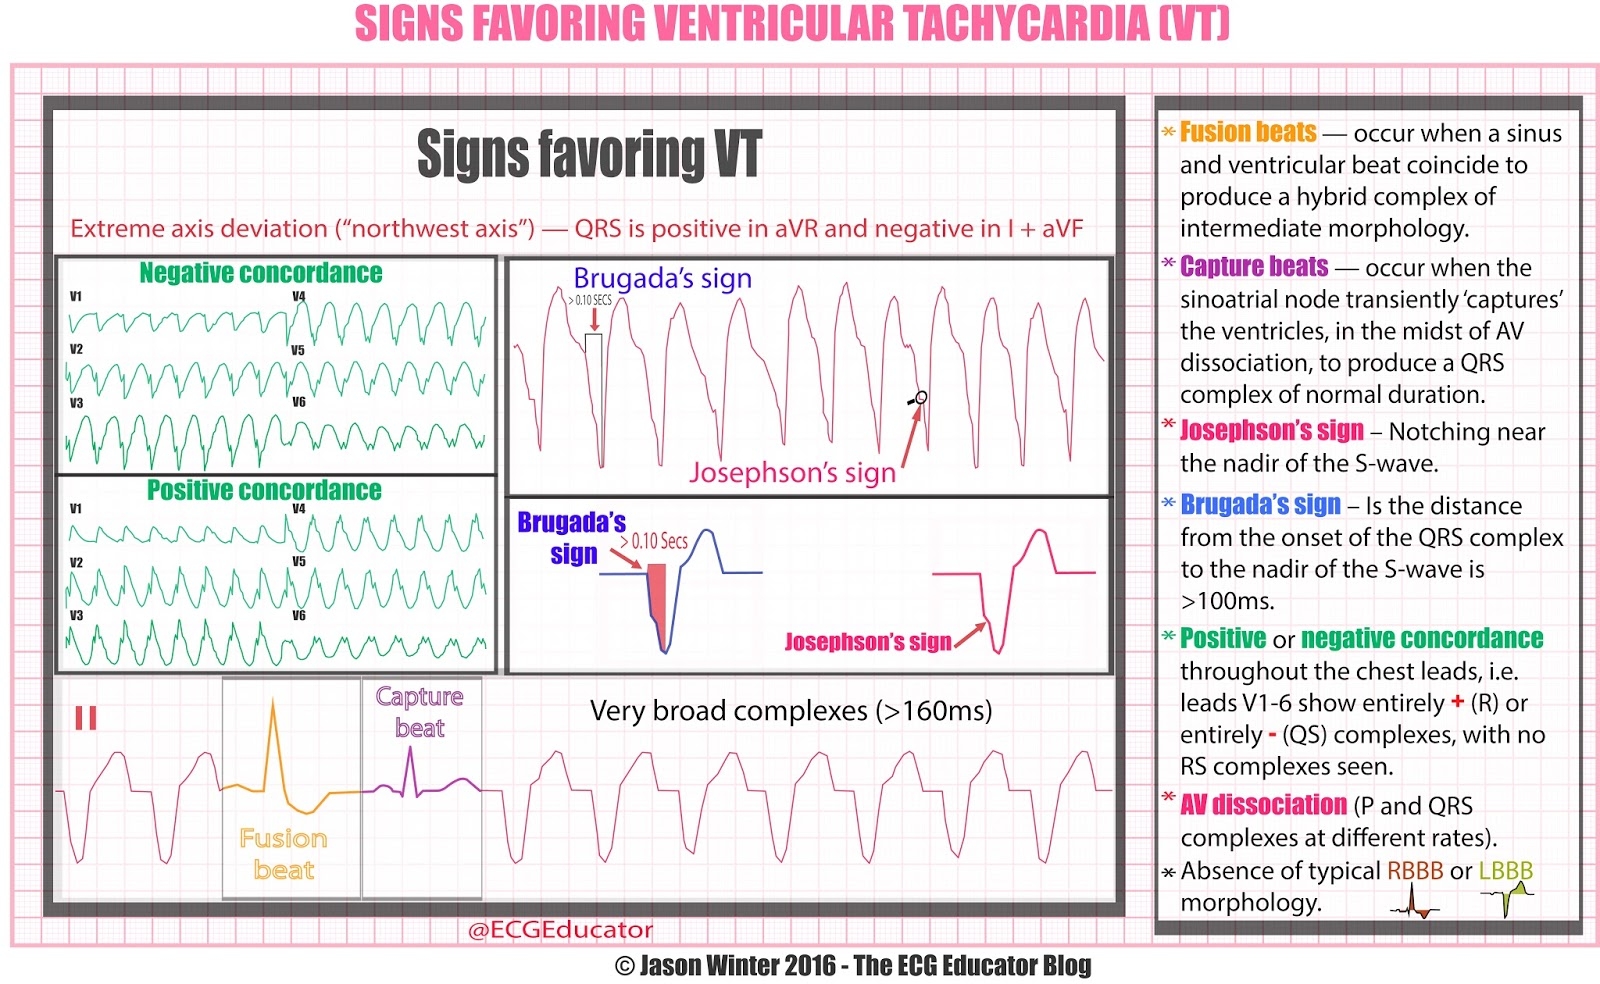 Ecg Educator Blog  Is It Vt?. Mimosa Signs. Fish Restaurant Signs Of Stroke. Post Office Signs. Fat Pad Signs. Contralateral Homonymous Signs. Poor Digestion Signs. Metal Wall Signs. Award Winning Signs